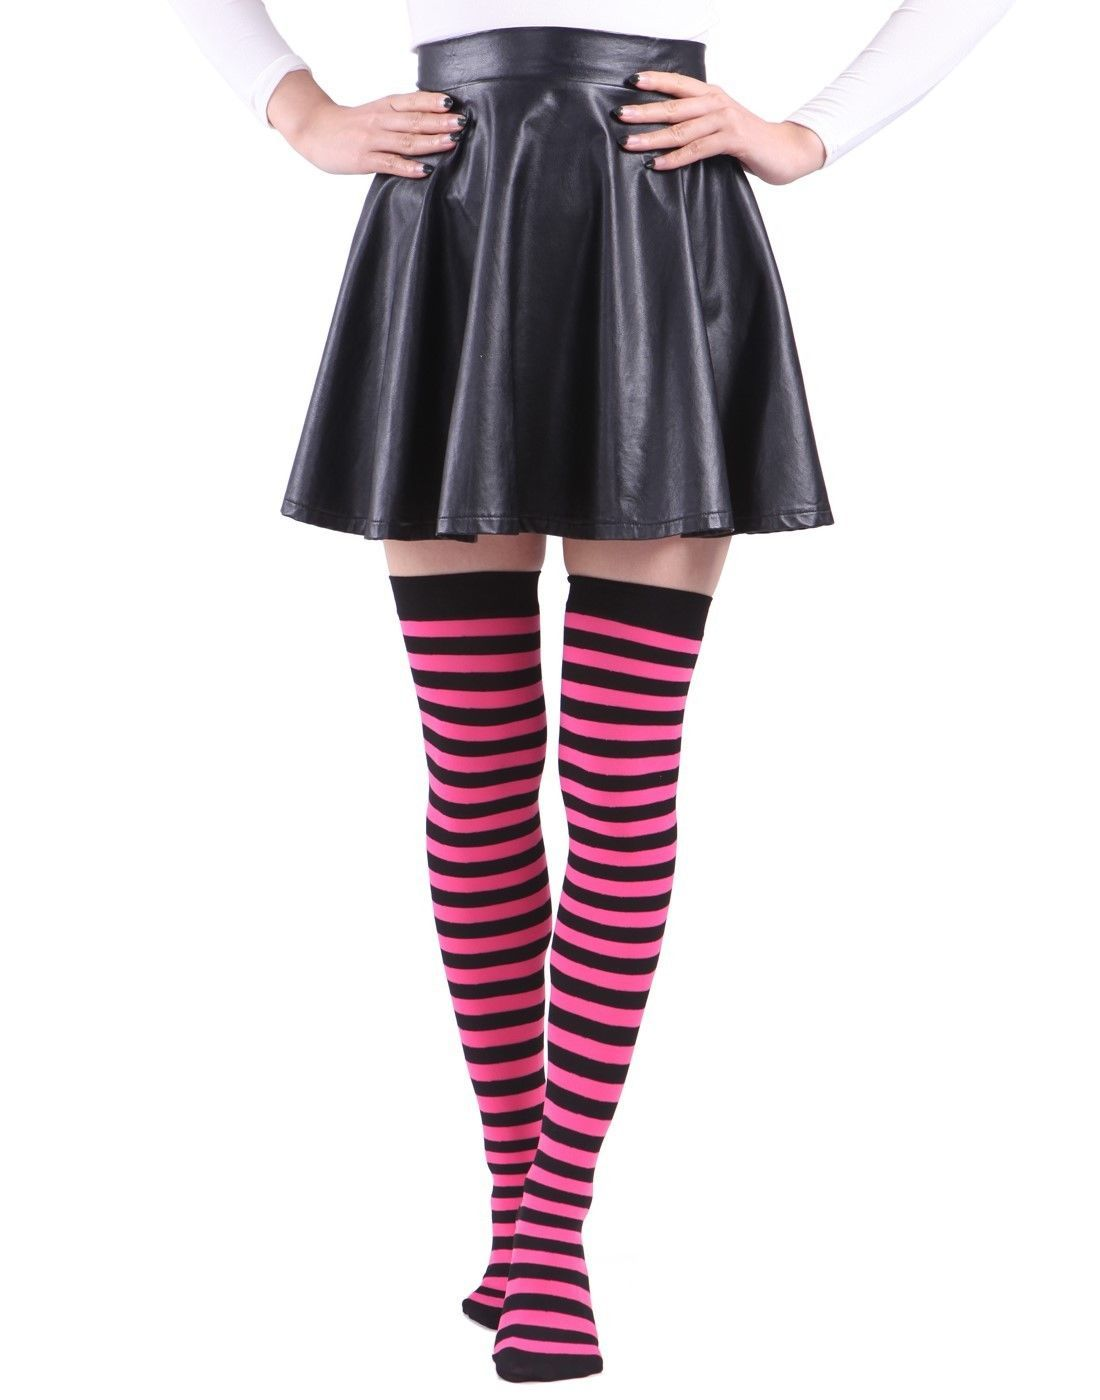 cool awesome women's plus size striped stockings thigh high over